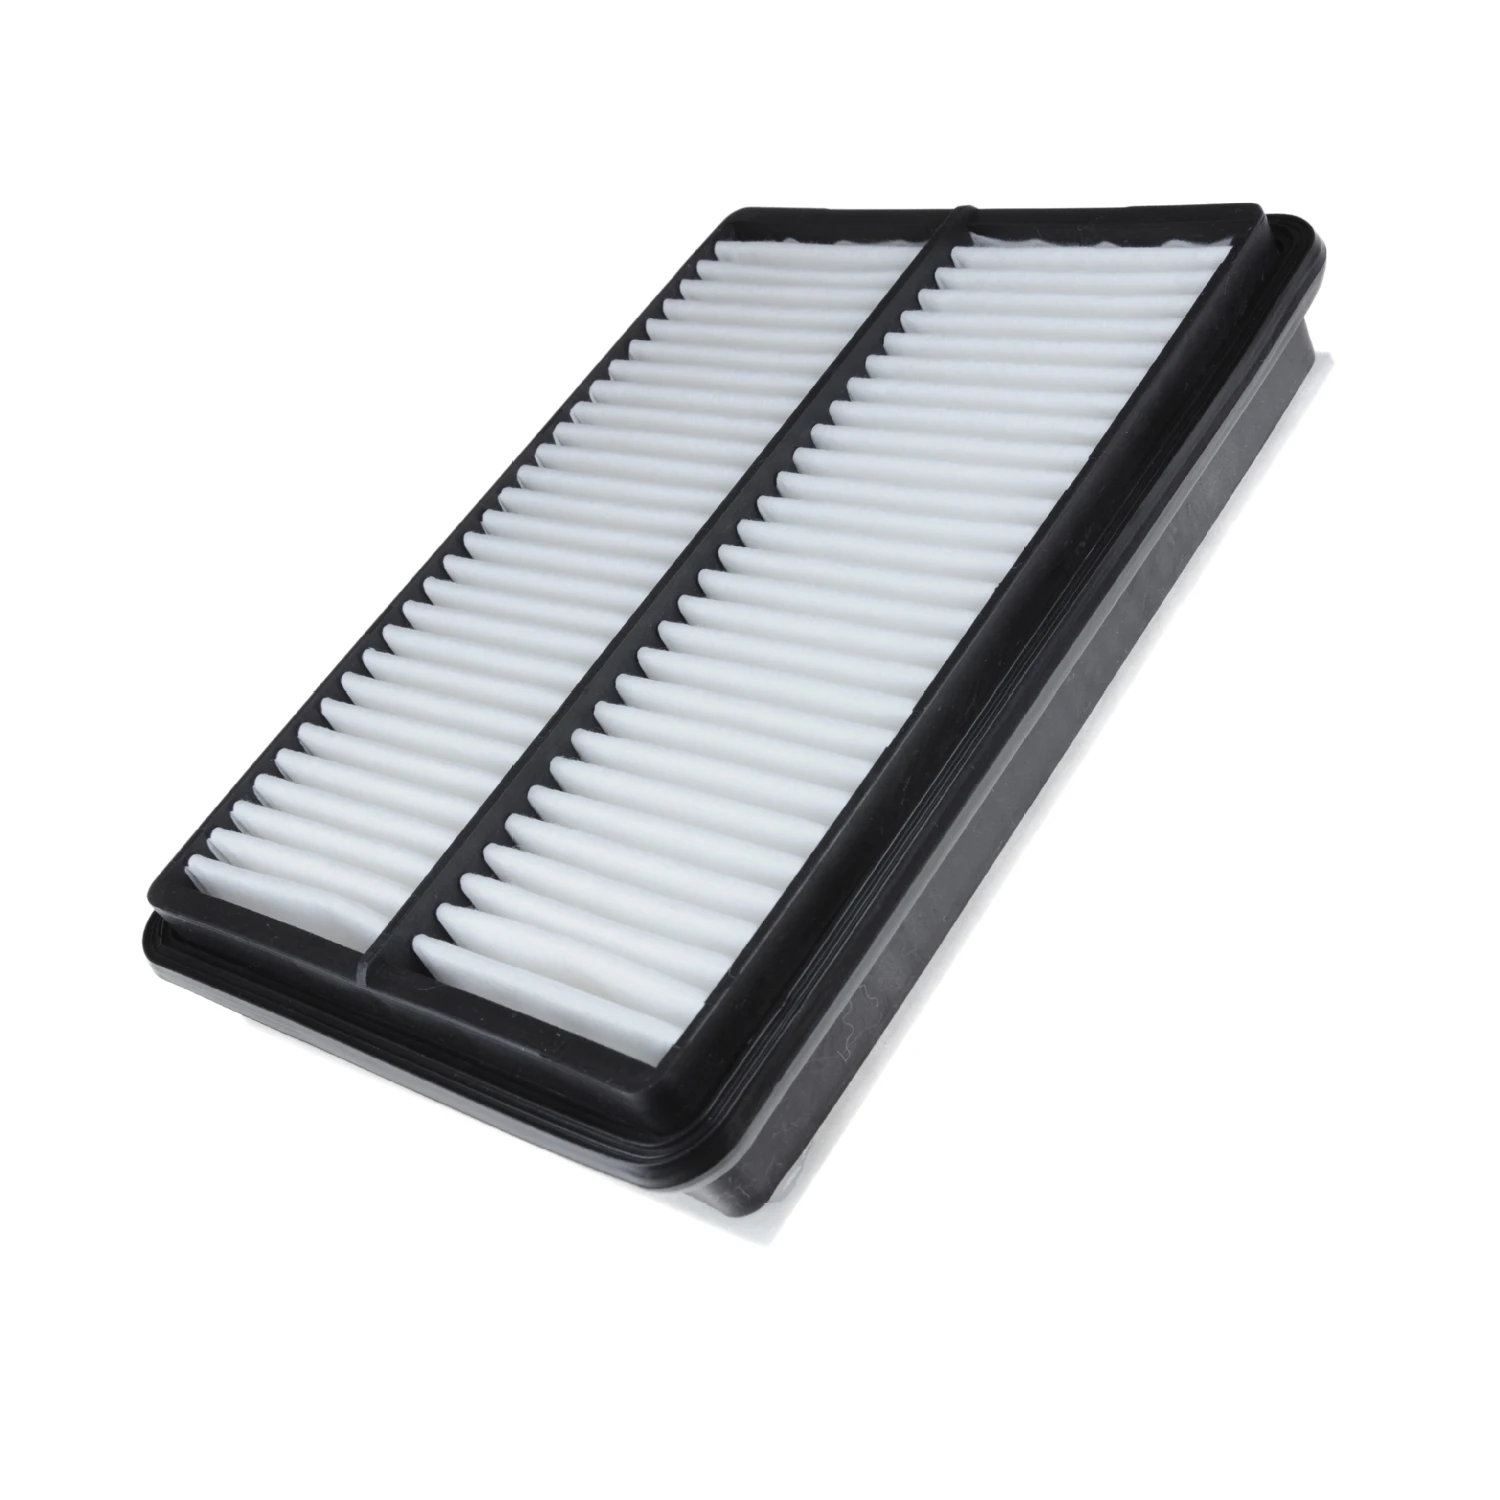 Blue Print Air Filter Great Wall Steed Wingle OE Quality ADG022129